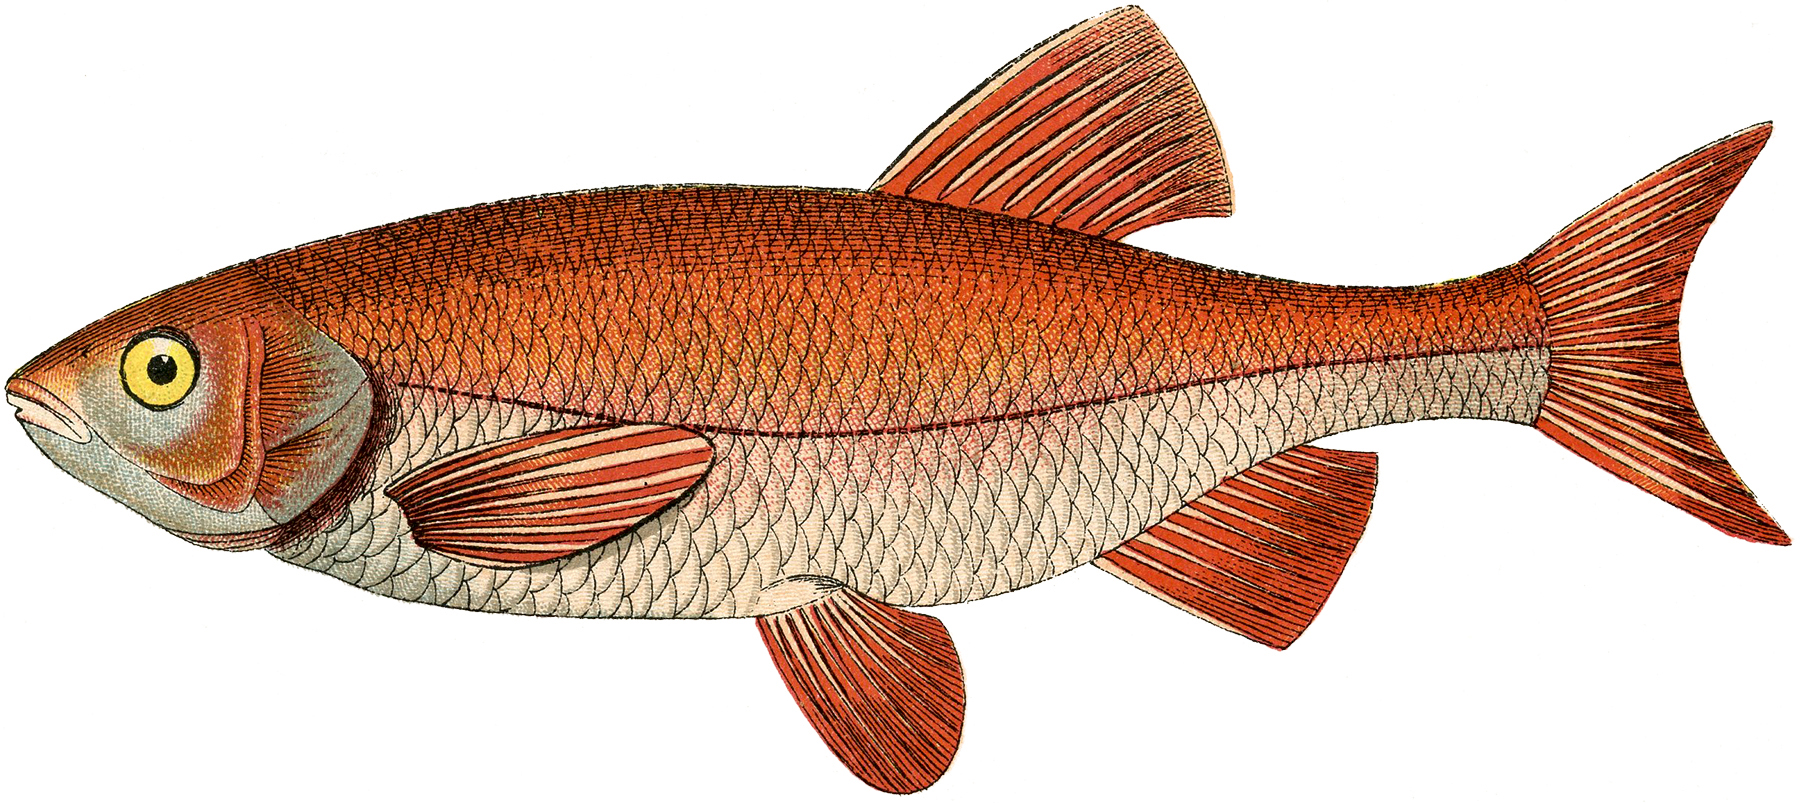 hight resolution of fresh water fish clipart